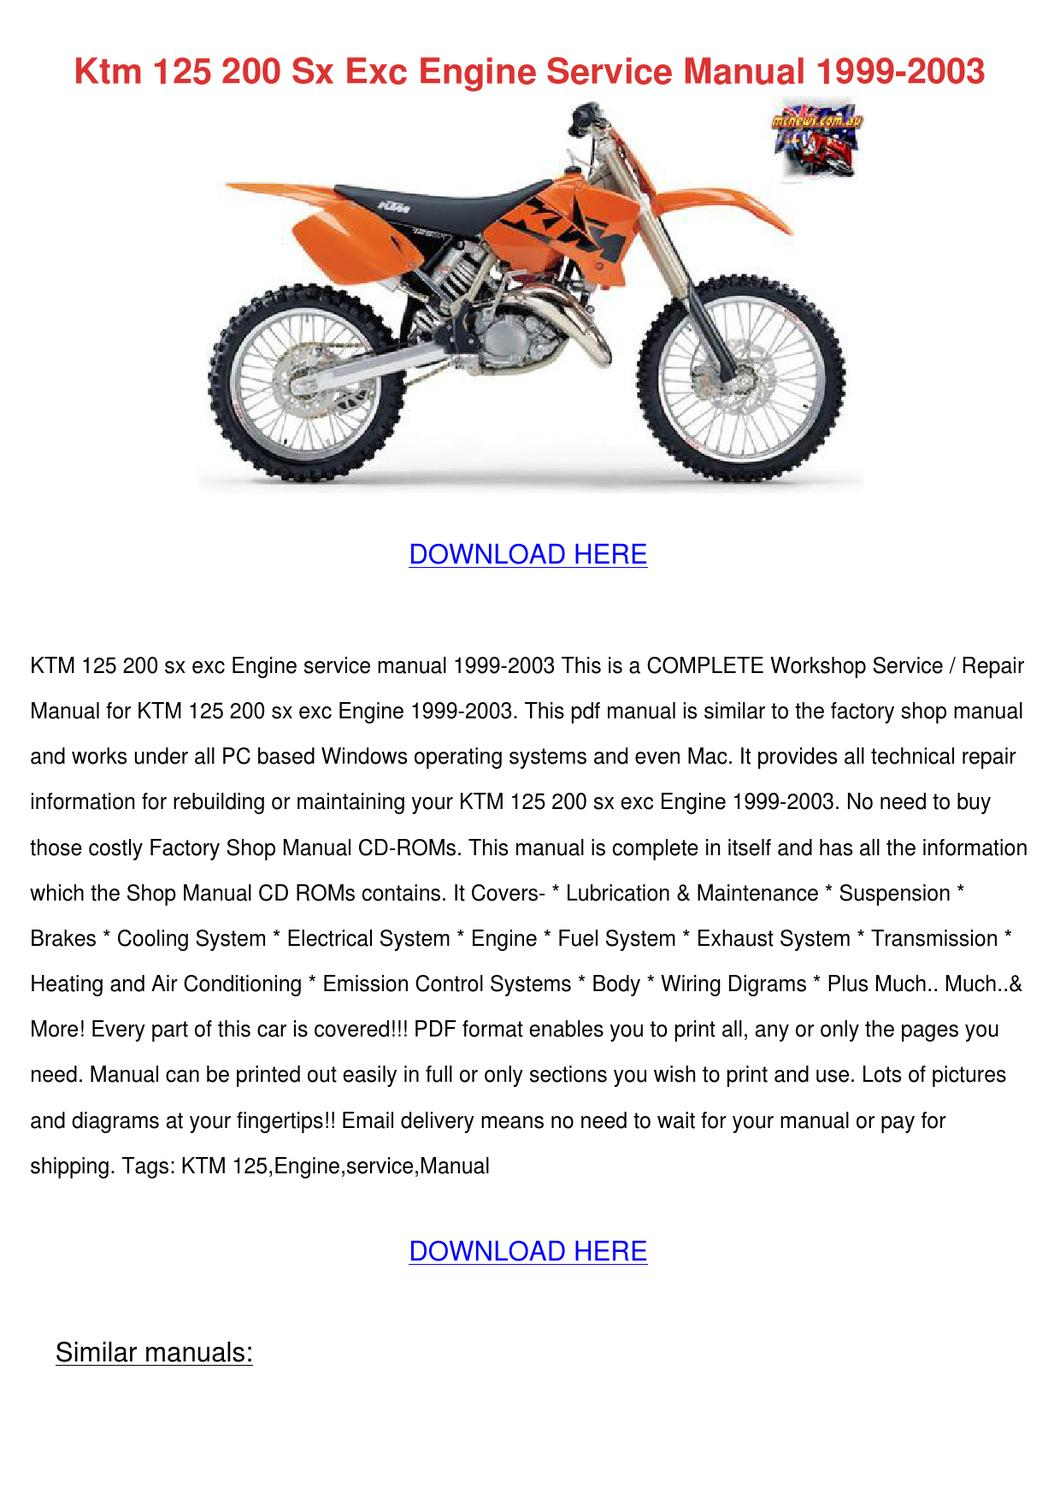 Ktm 125 200 Sx Exc Engine Service Manual 1999 By